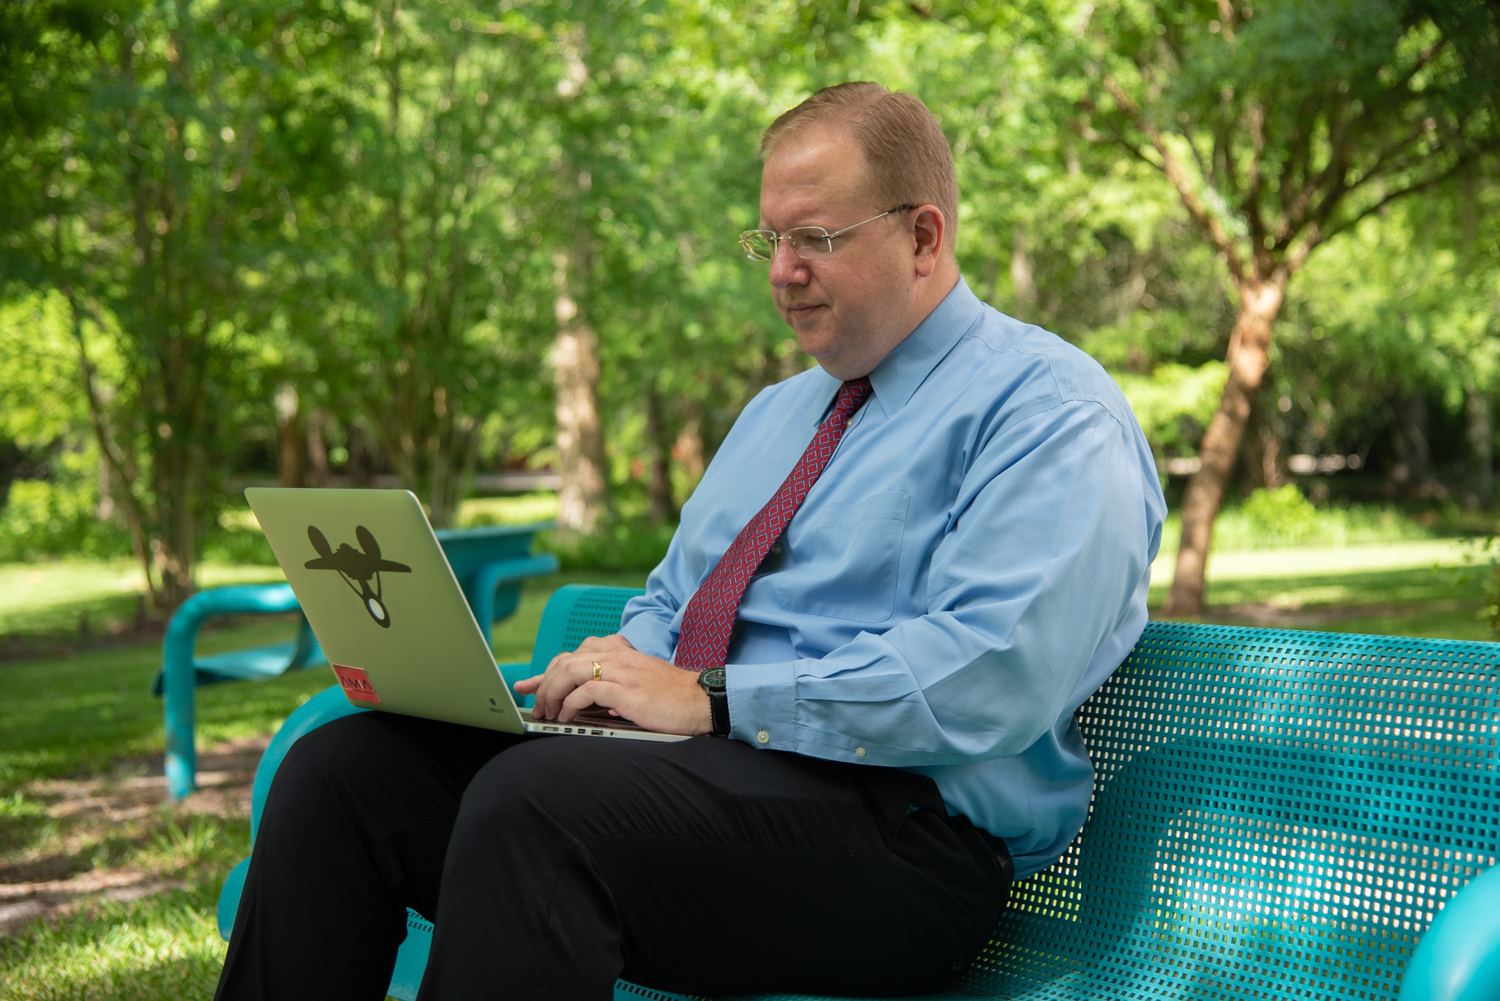 Kevin Hanson sitting on a bench and working on his computer outside